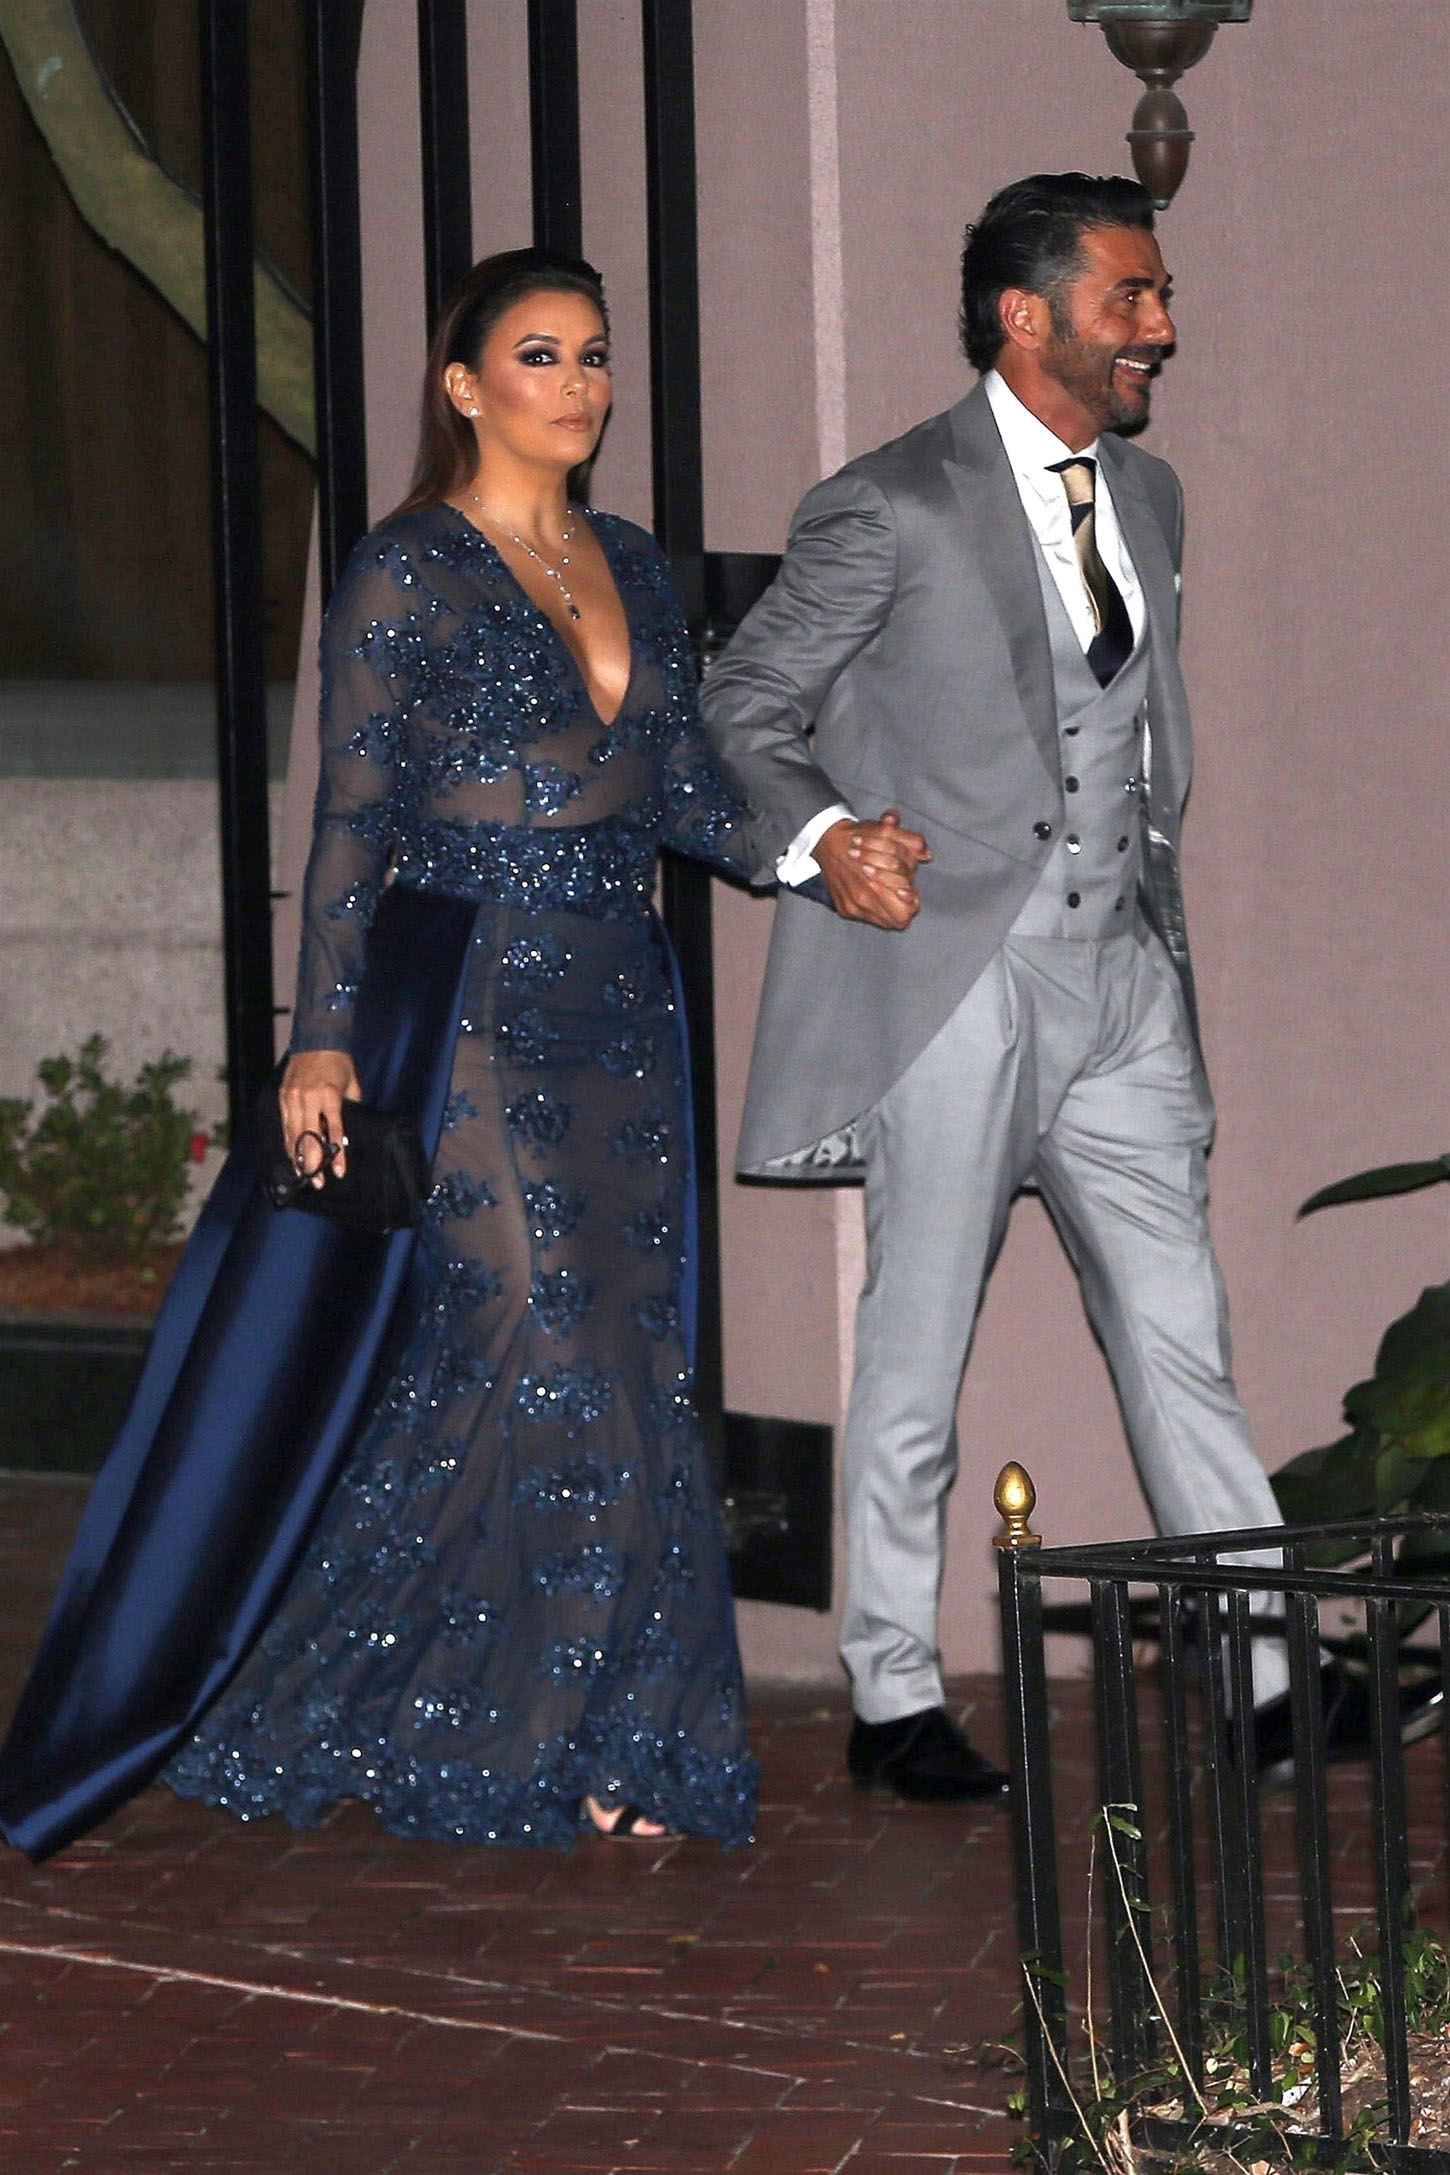 New Orleans, LA  - *EXCLUSIVE*  - Couple Eva Longoria and Jose Bastion are seen heading to the Serena Williams and Alexis Ohanian wedding in New Orleans. Eva looked stunning in a blue sequin gown.  Pictured: Eva Longoria, Jose Bastion    *UK Clients - Pictures Containing Children Please Pixelate Face Prior To Publication*, Image: 355540868, License: Rights-managed, Restrictions: , Model Release: no, Credit line: Profimedia, AKM-GSI